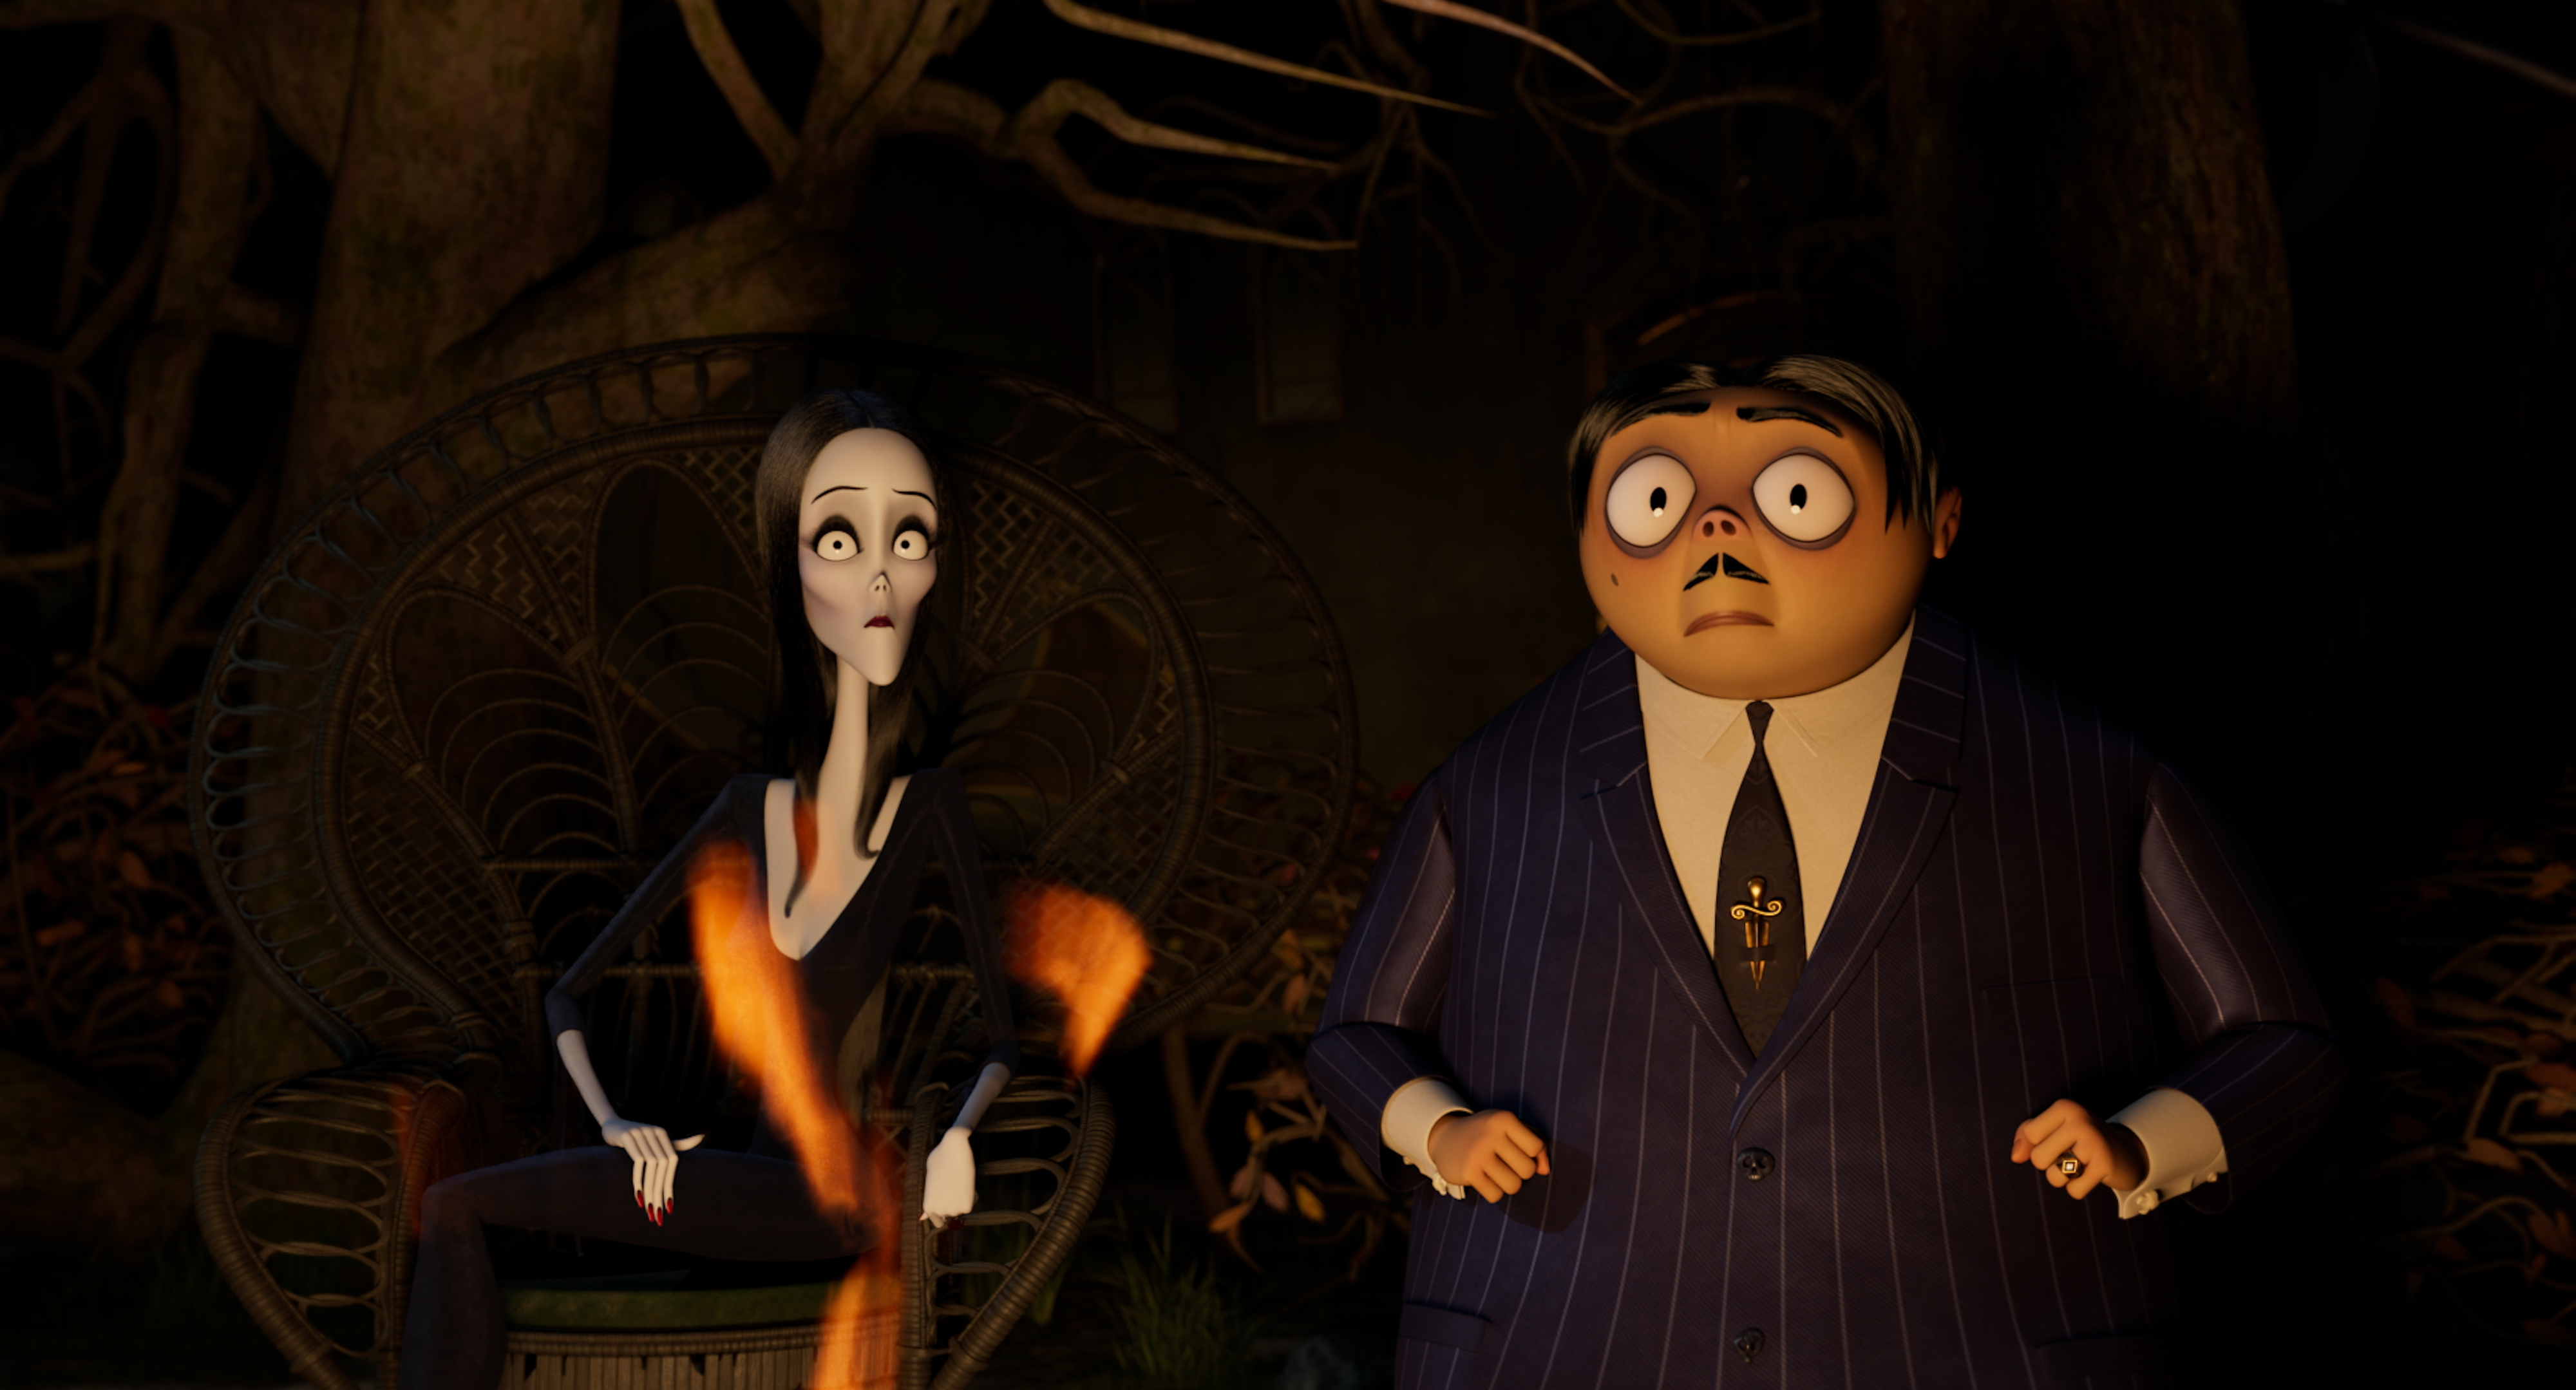 Morticia and Gomez Addams in the dark, staring wide-eyed at something offscreen